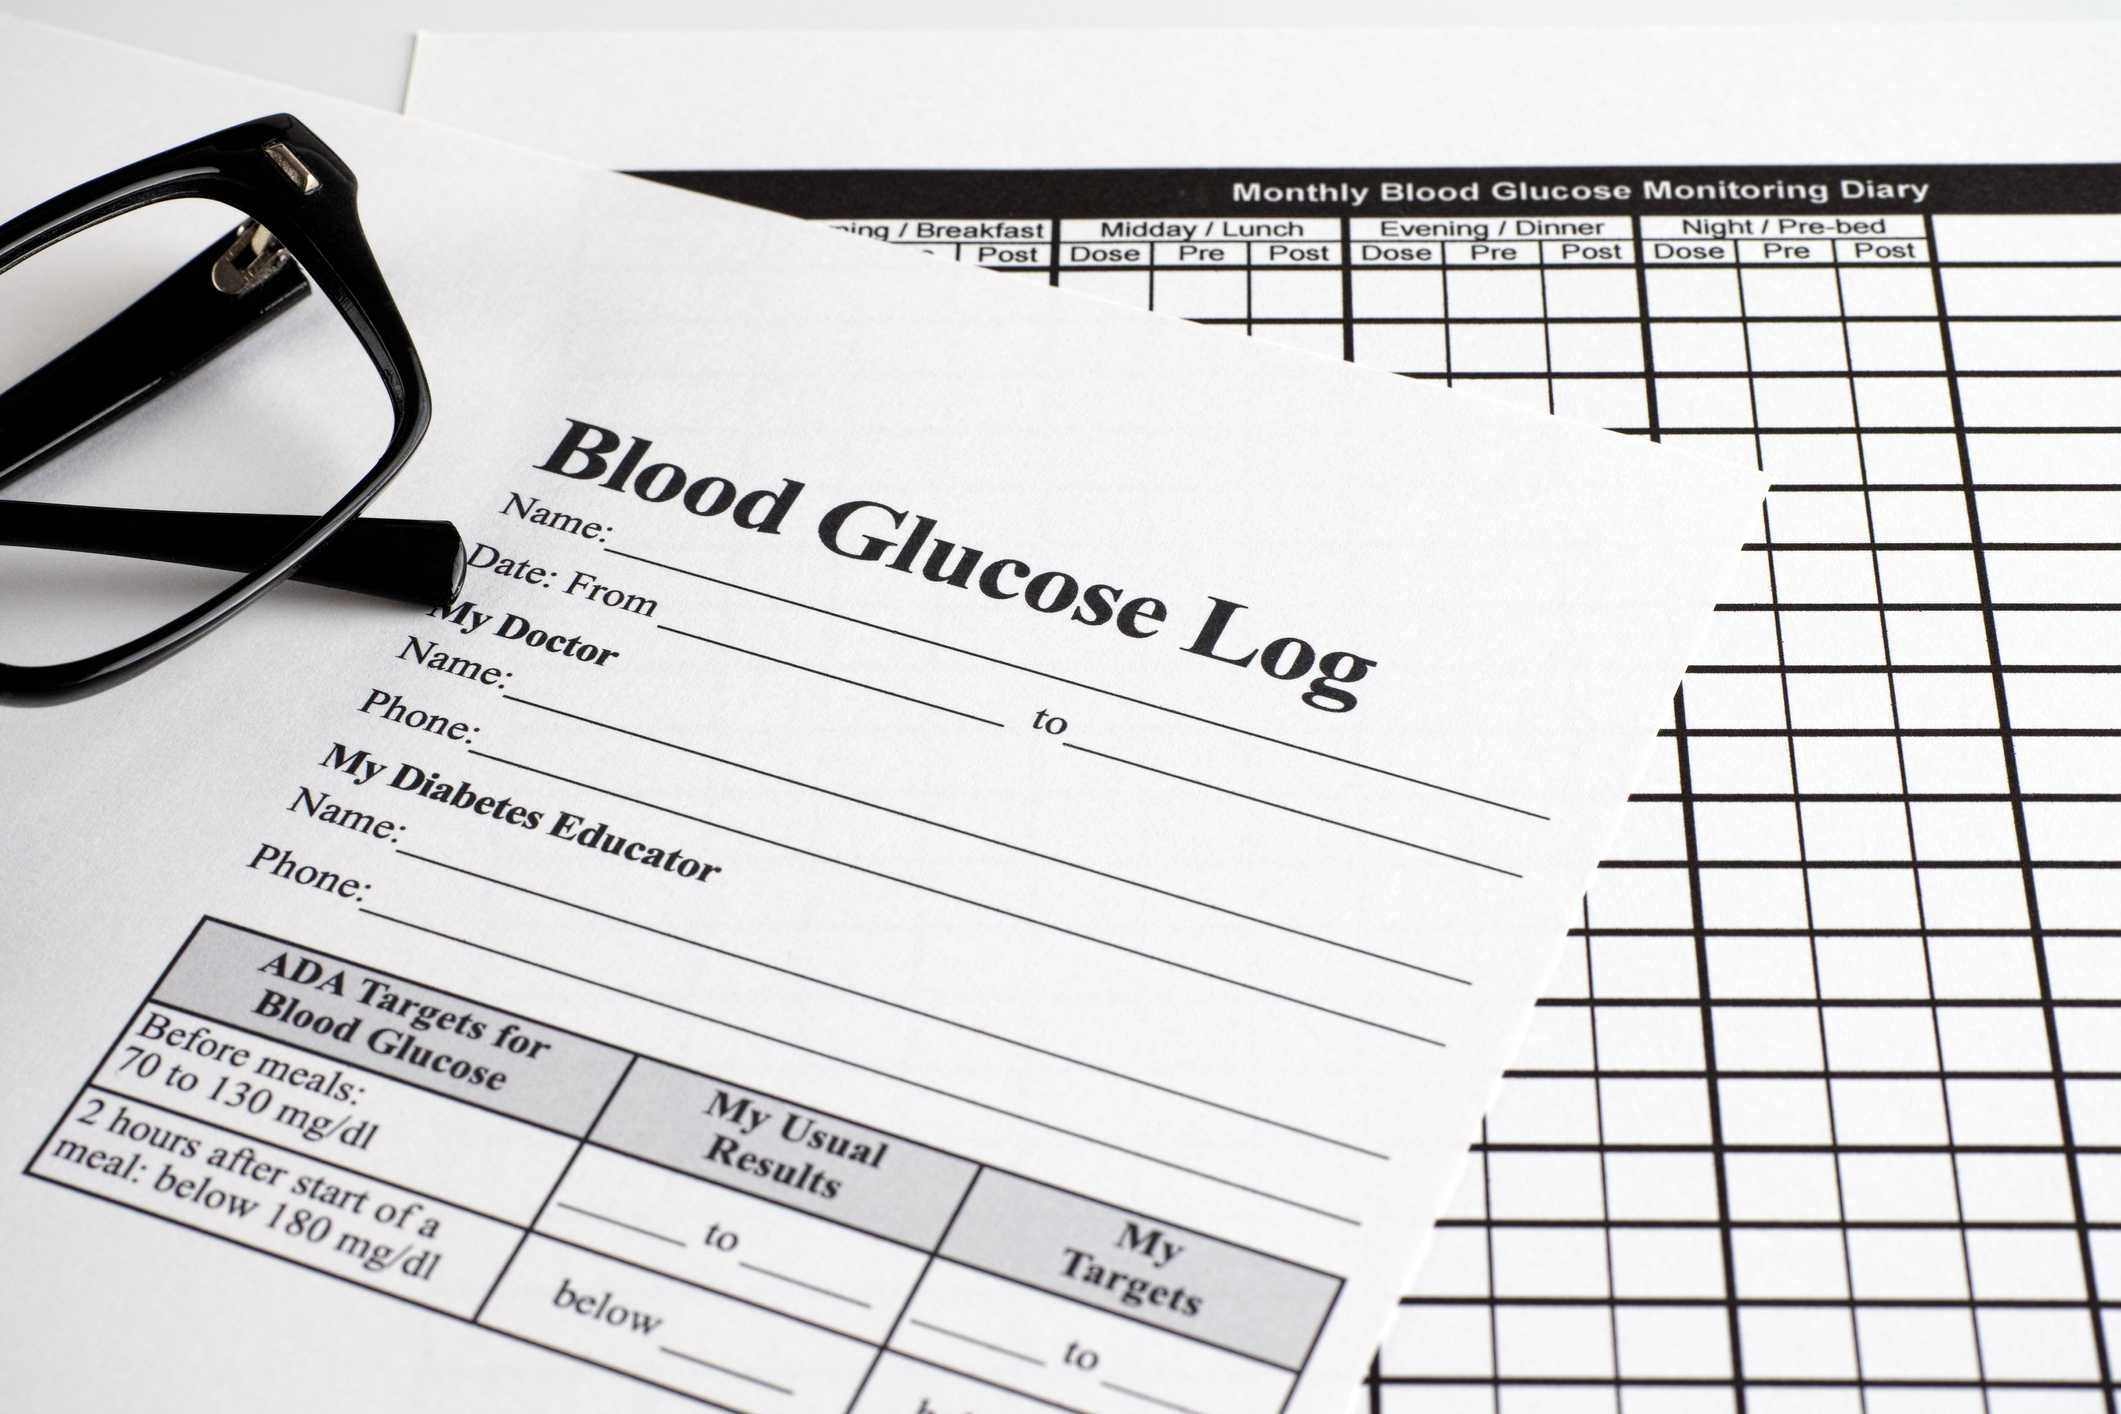 Blood Glucose Diaries - Free Blood Glucose Monitoring Diary